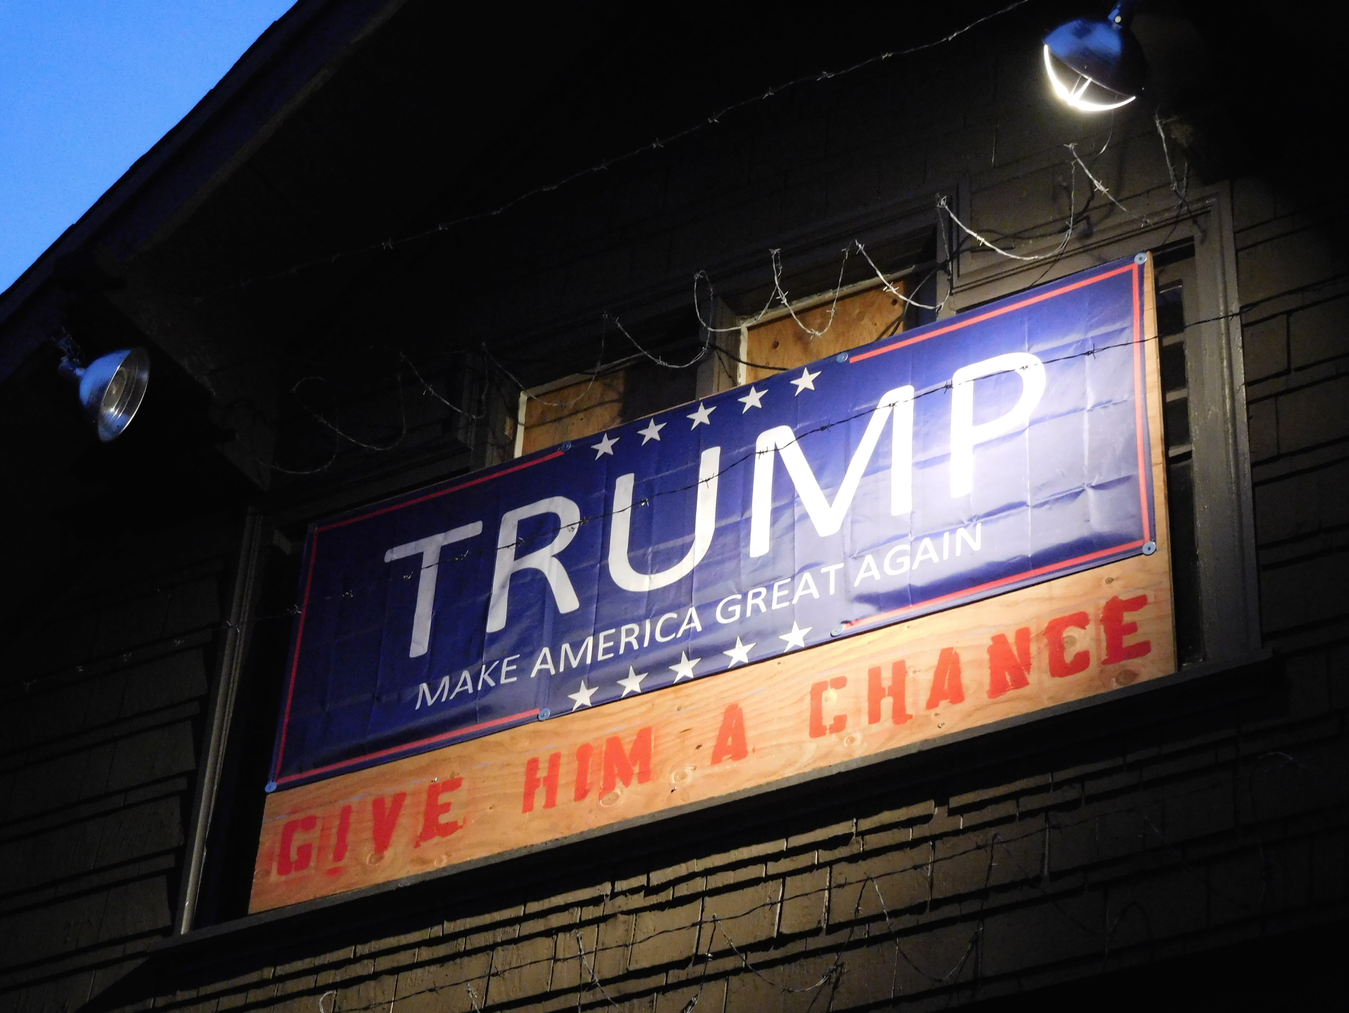 Oakland Landlord Evicts Tenant, Then Hangs Pro-Trump